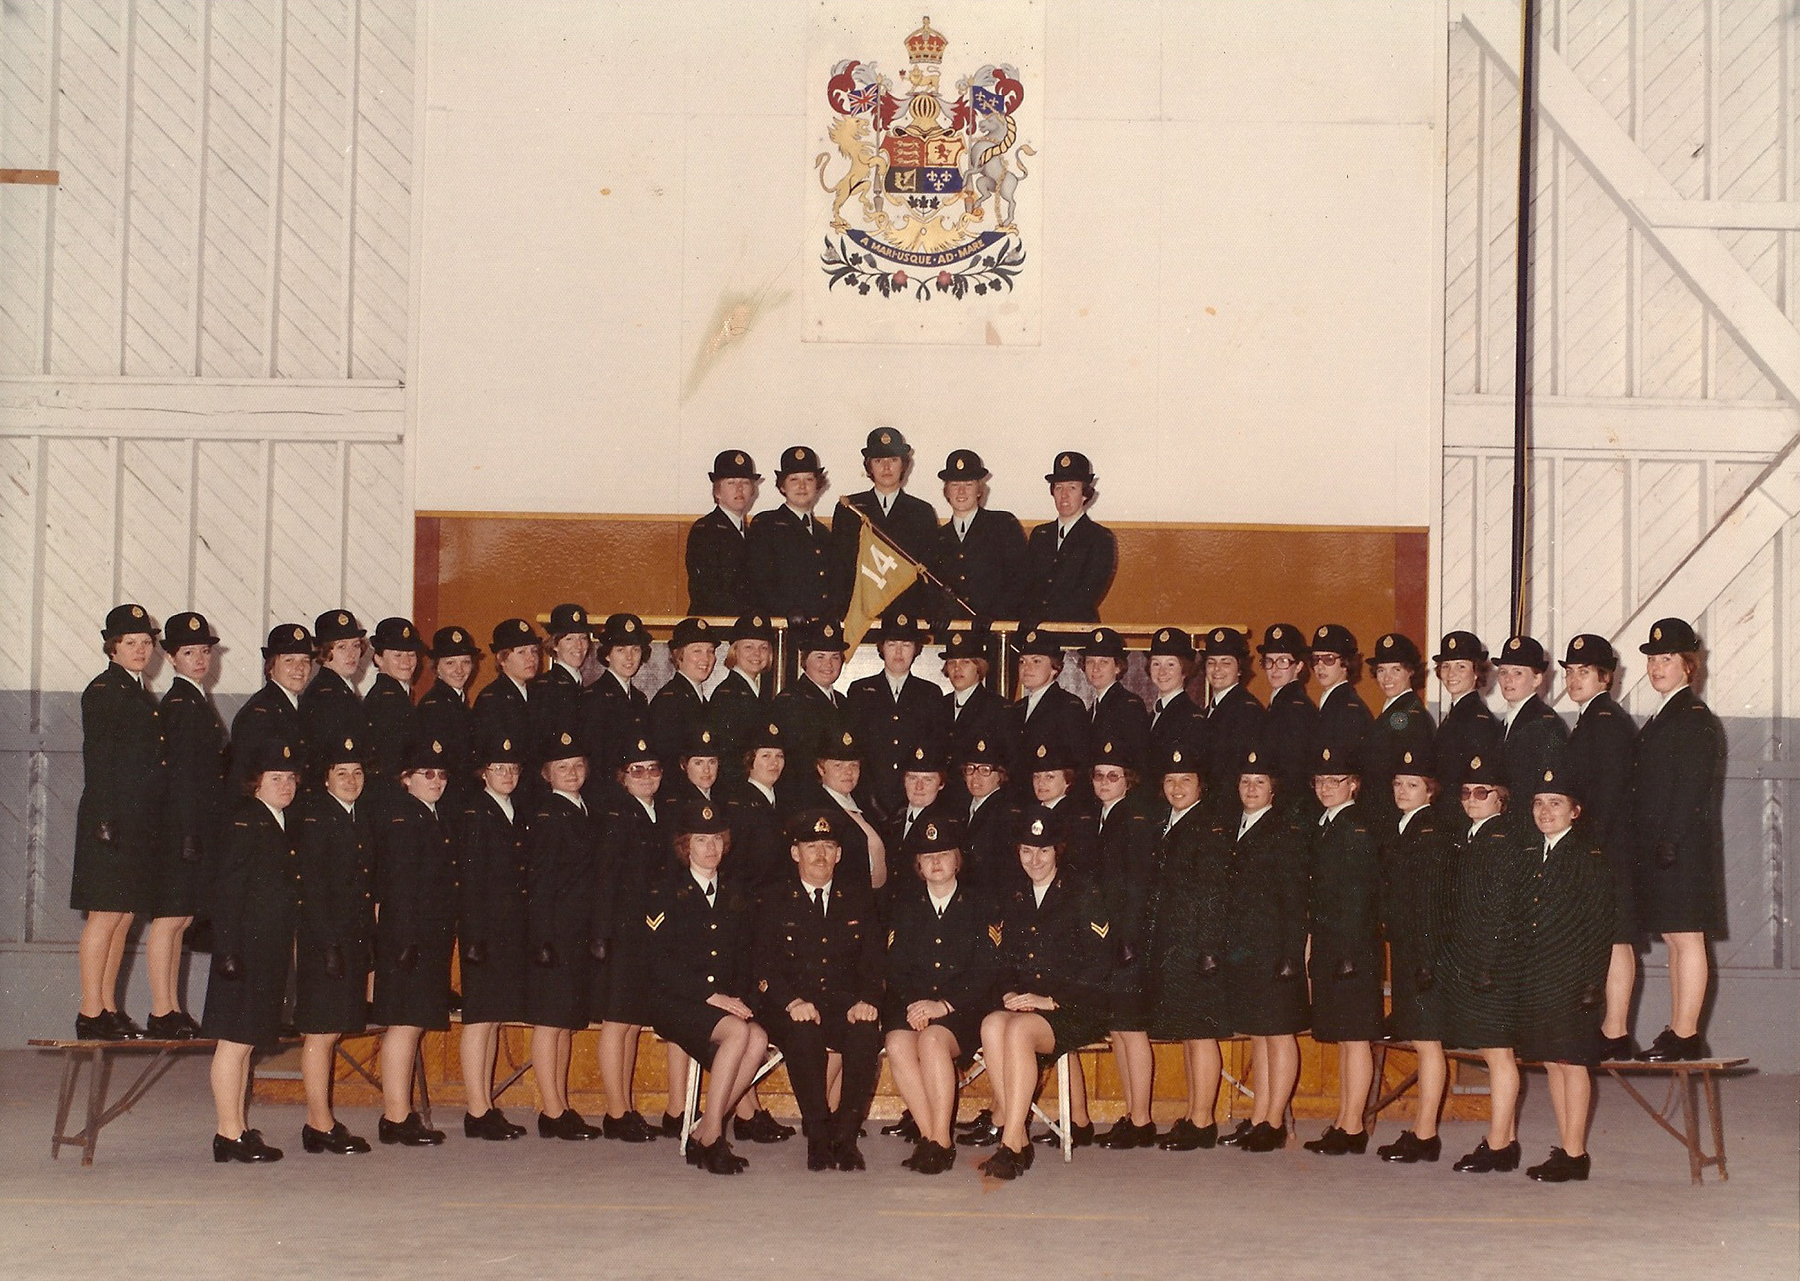 In her official basic training graduation ceremony photograph taken at Cornwallis, Nova Scotia, in 1976, Private Cathy Coombs stand in the second row from the top, seventh from the right. PHOTO: Submitted